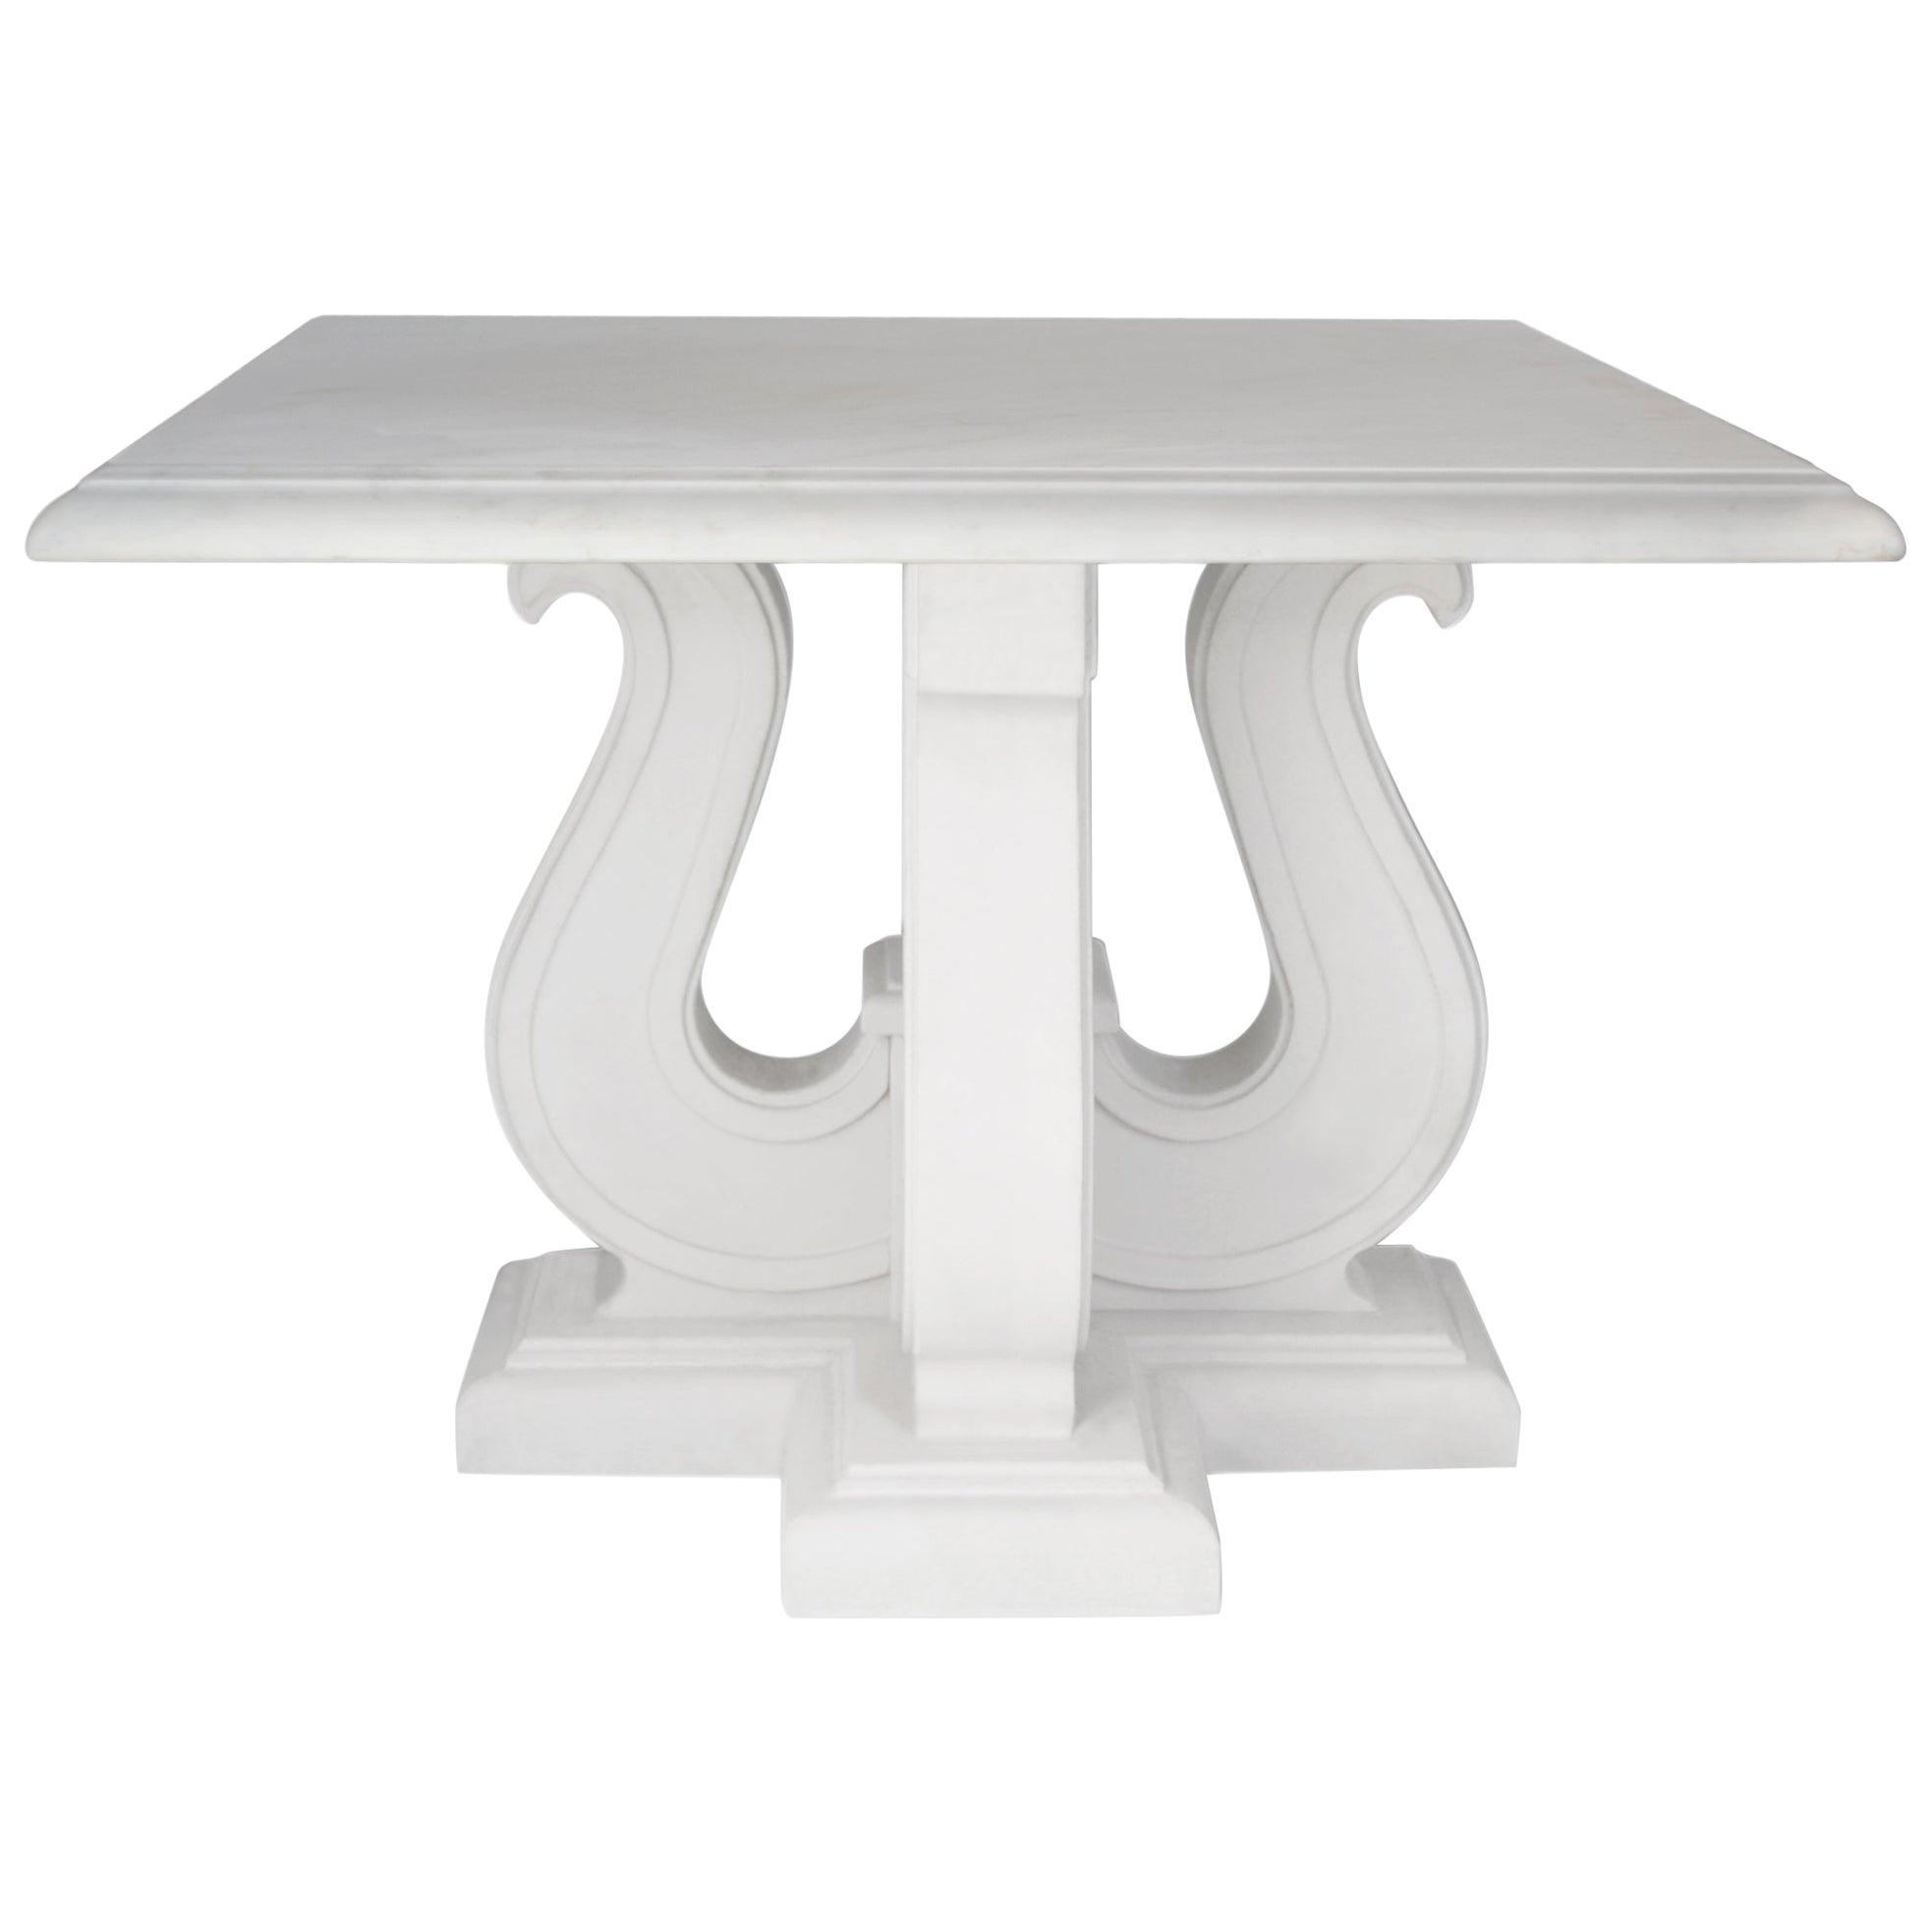 Square Coffee Table White Marble Top handmade  Lyre white Lacquered Wooden Base